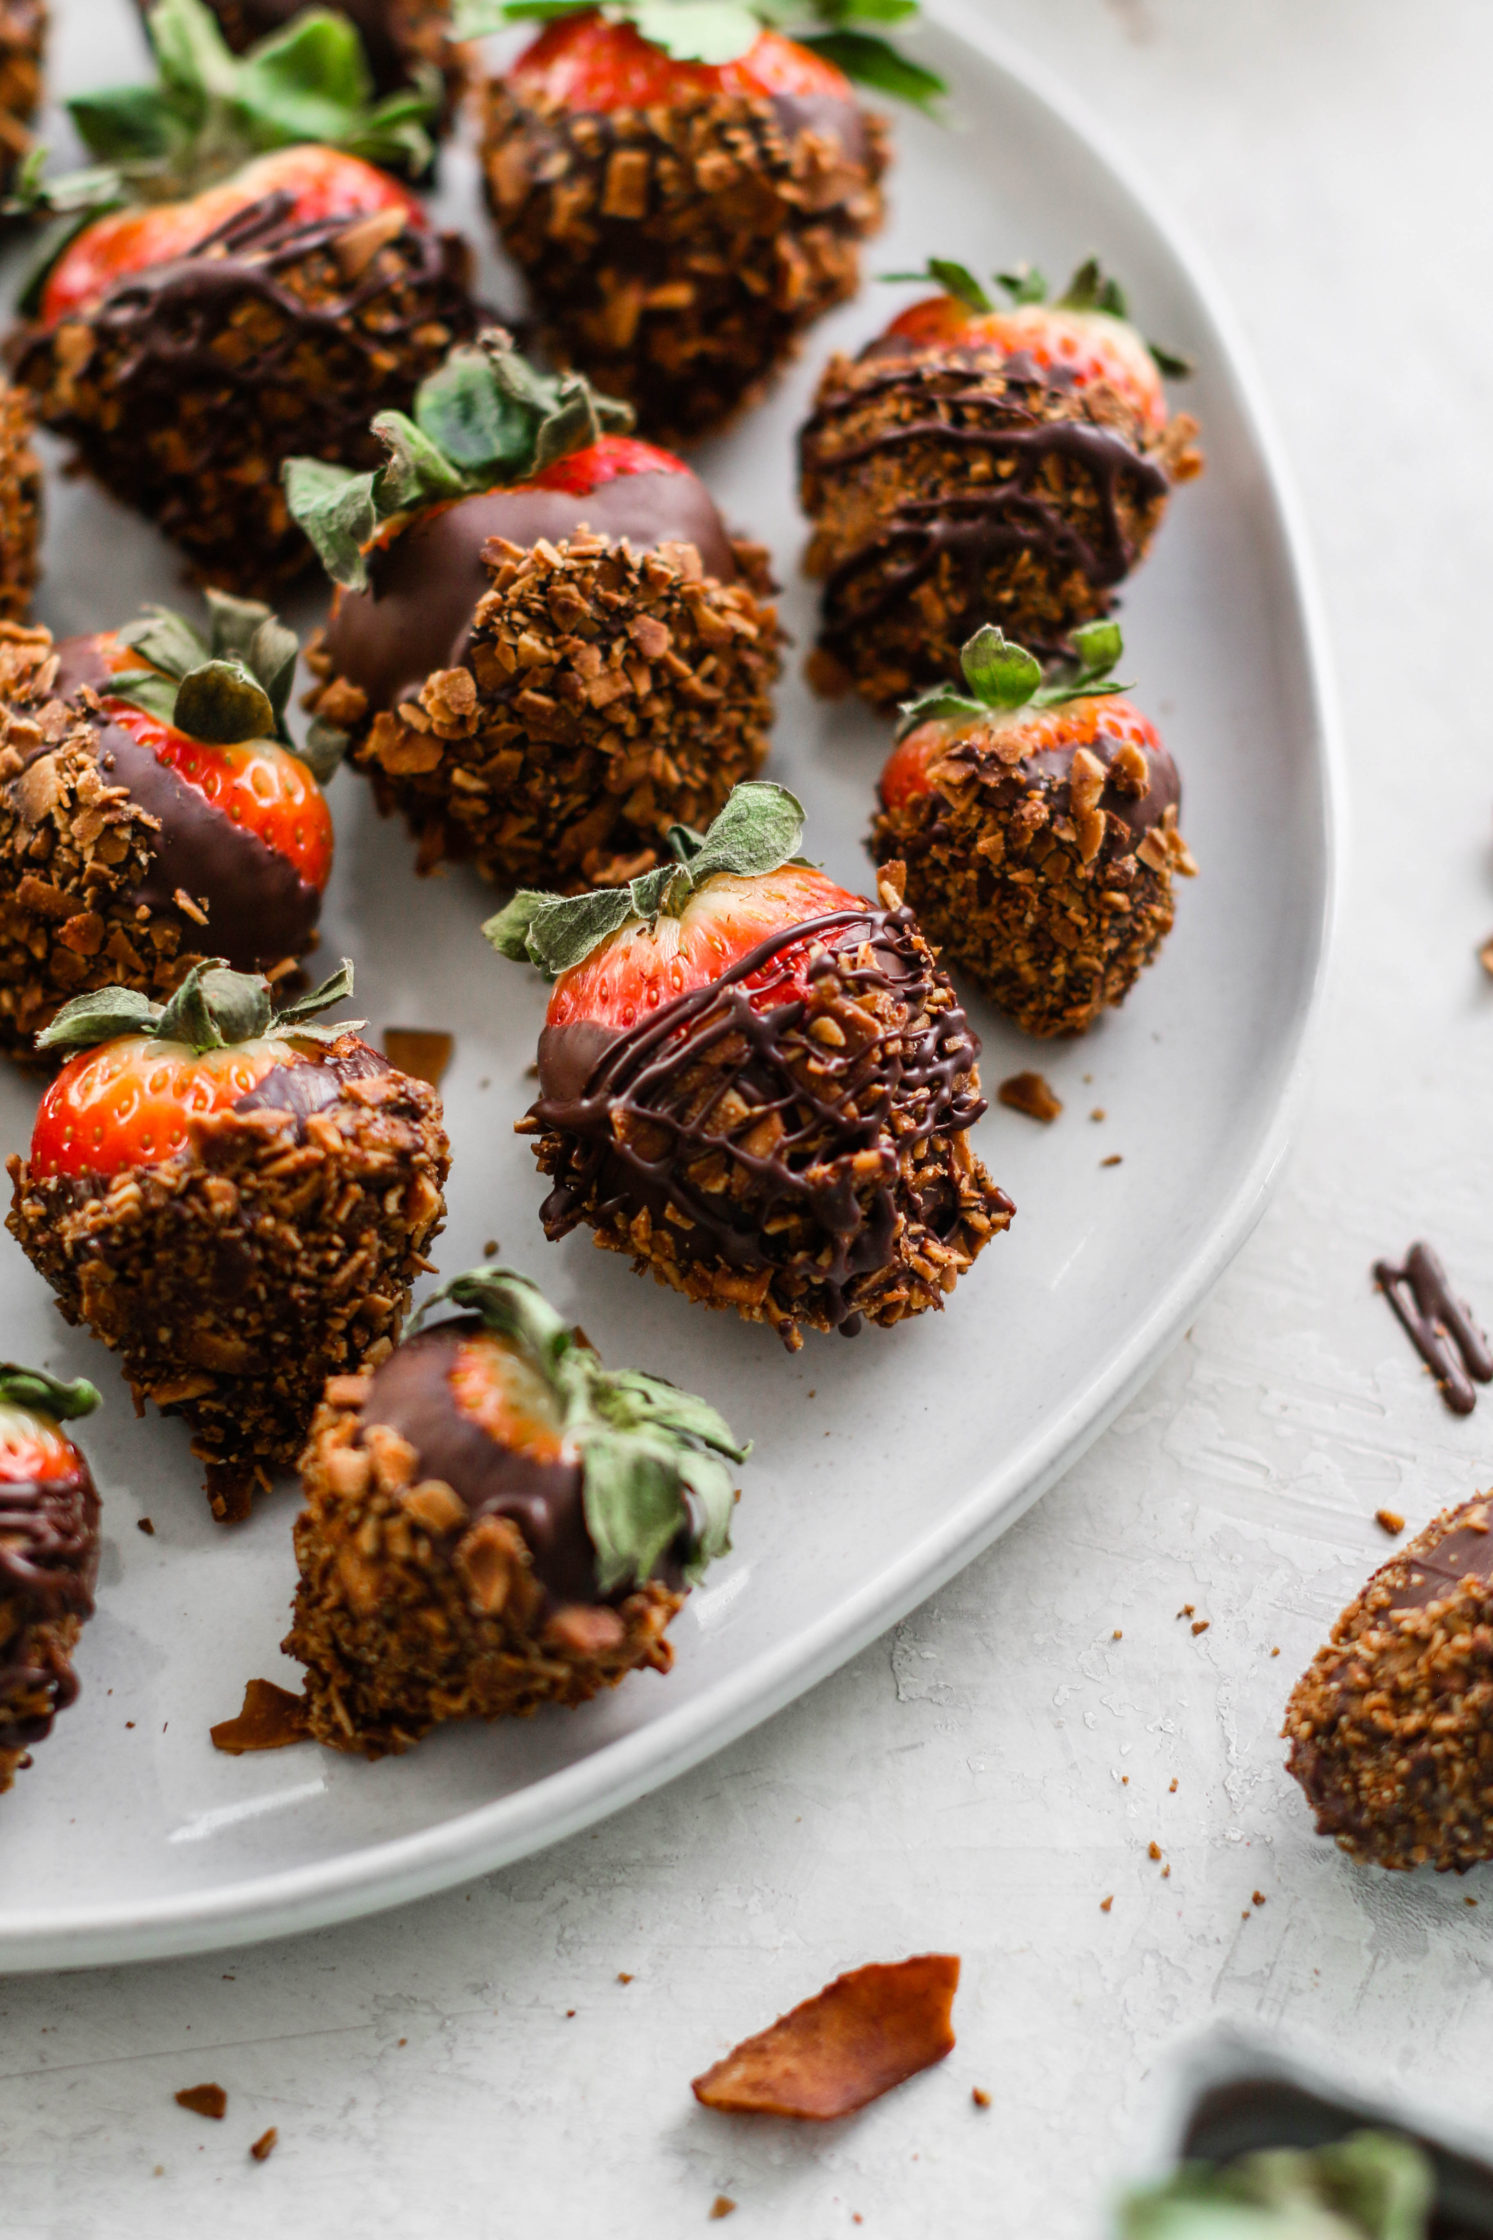 Chocolate Coconut Covered Strawberries by Flora & Vino